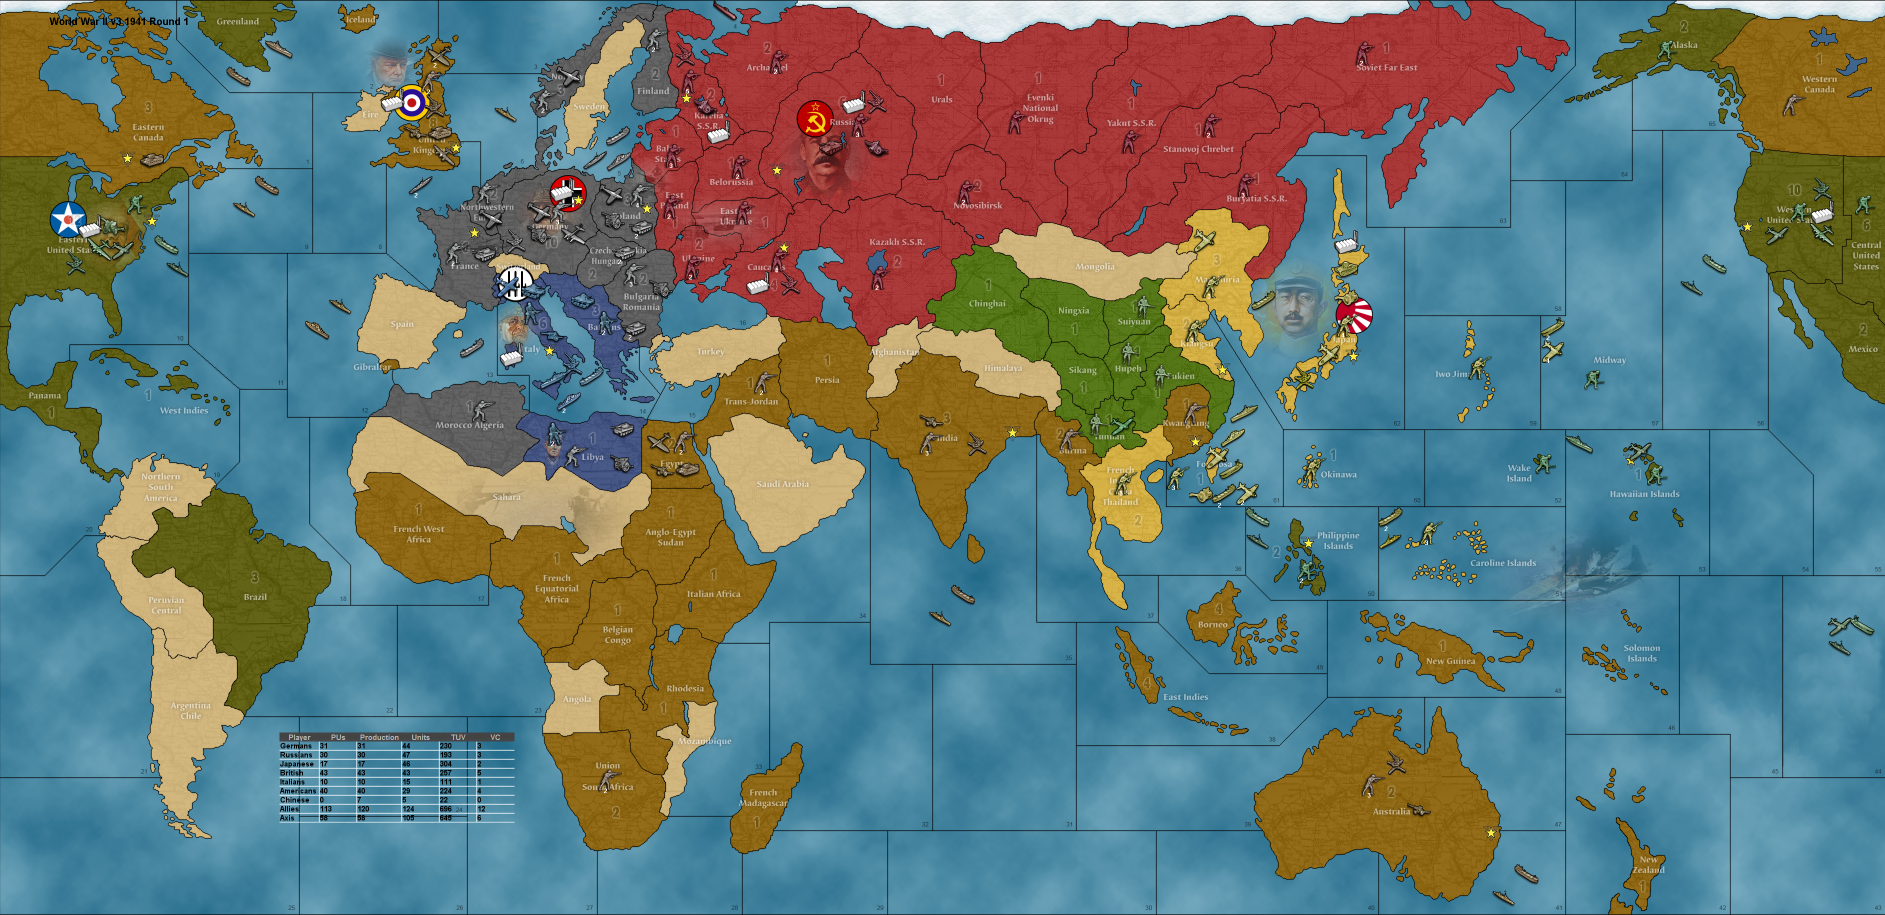 Triplea 1614 released free turn based strategy game news mod db you can see the that map here mediadiedb gumiabroncs Gallery